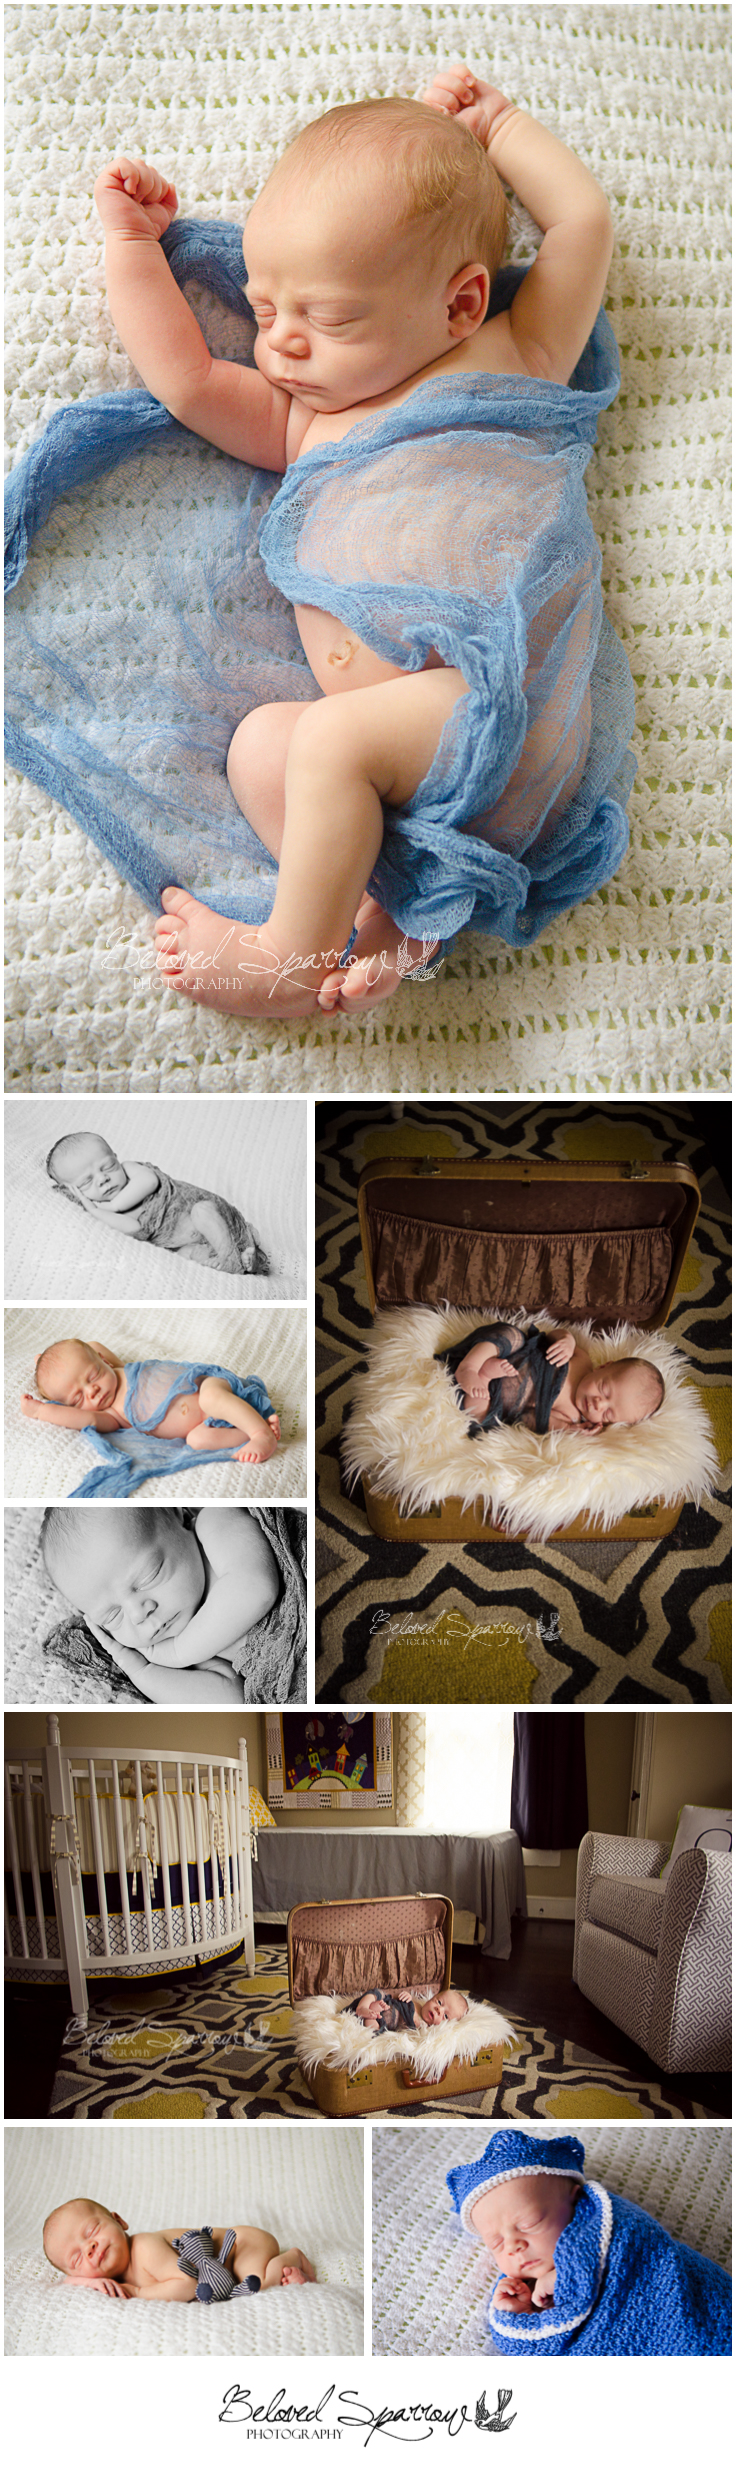 Peachtree City Newborn Photographer